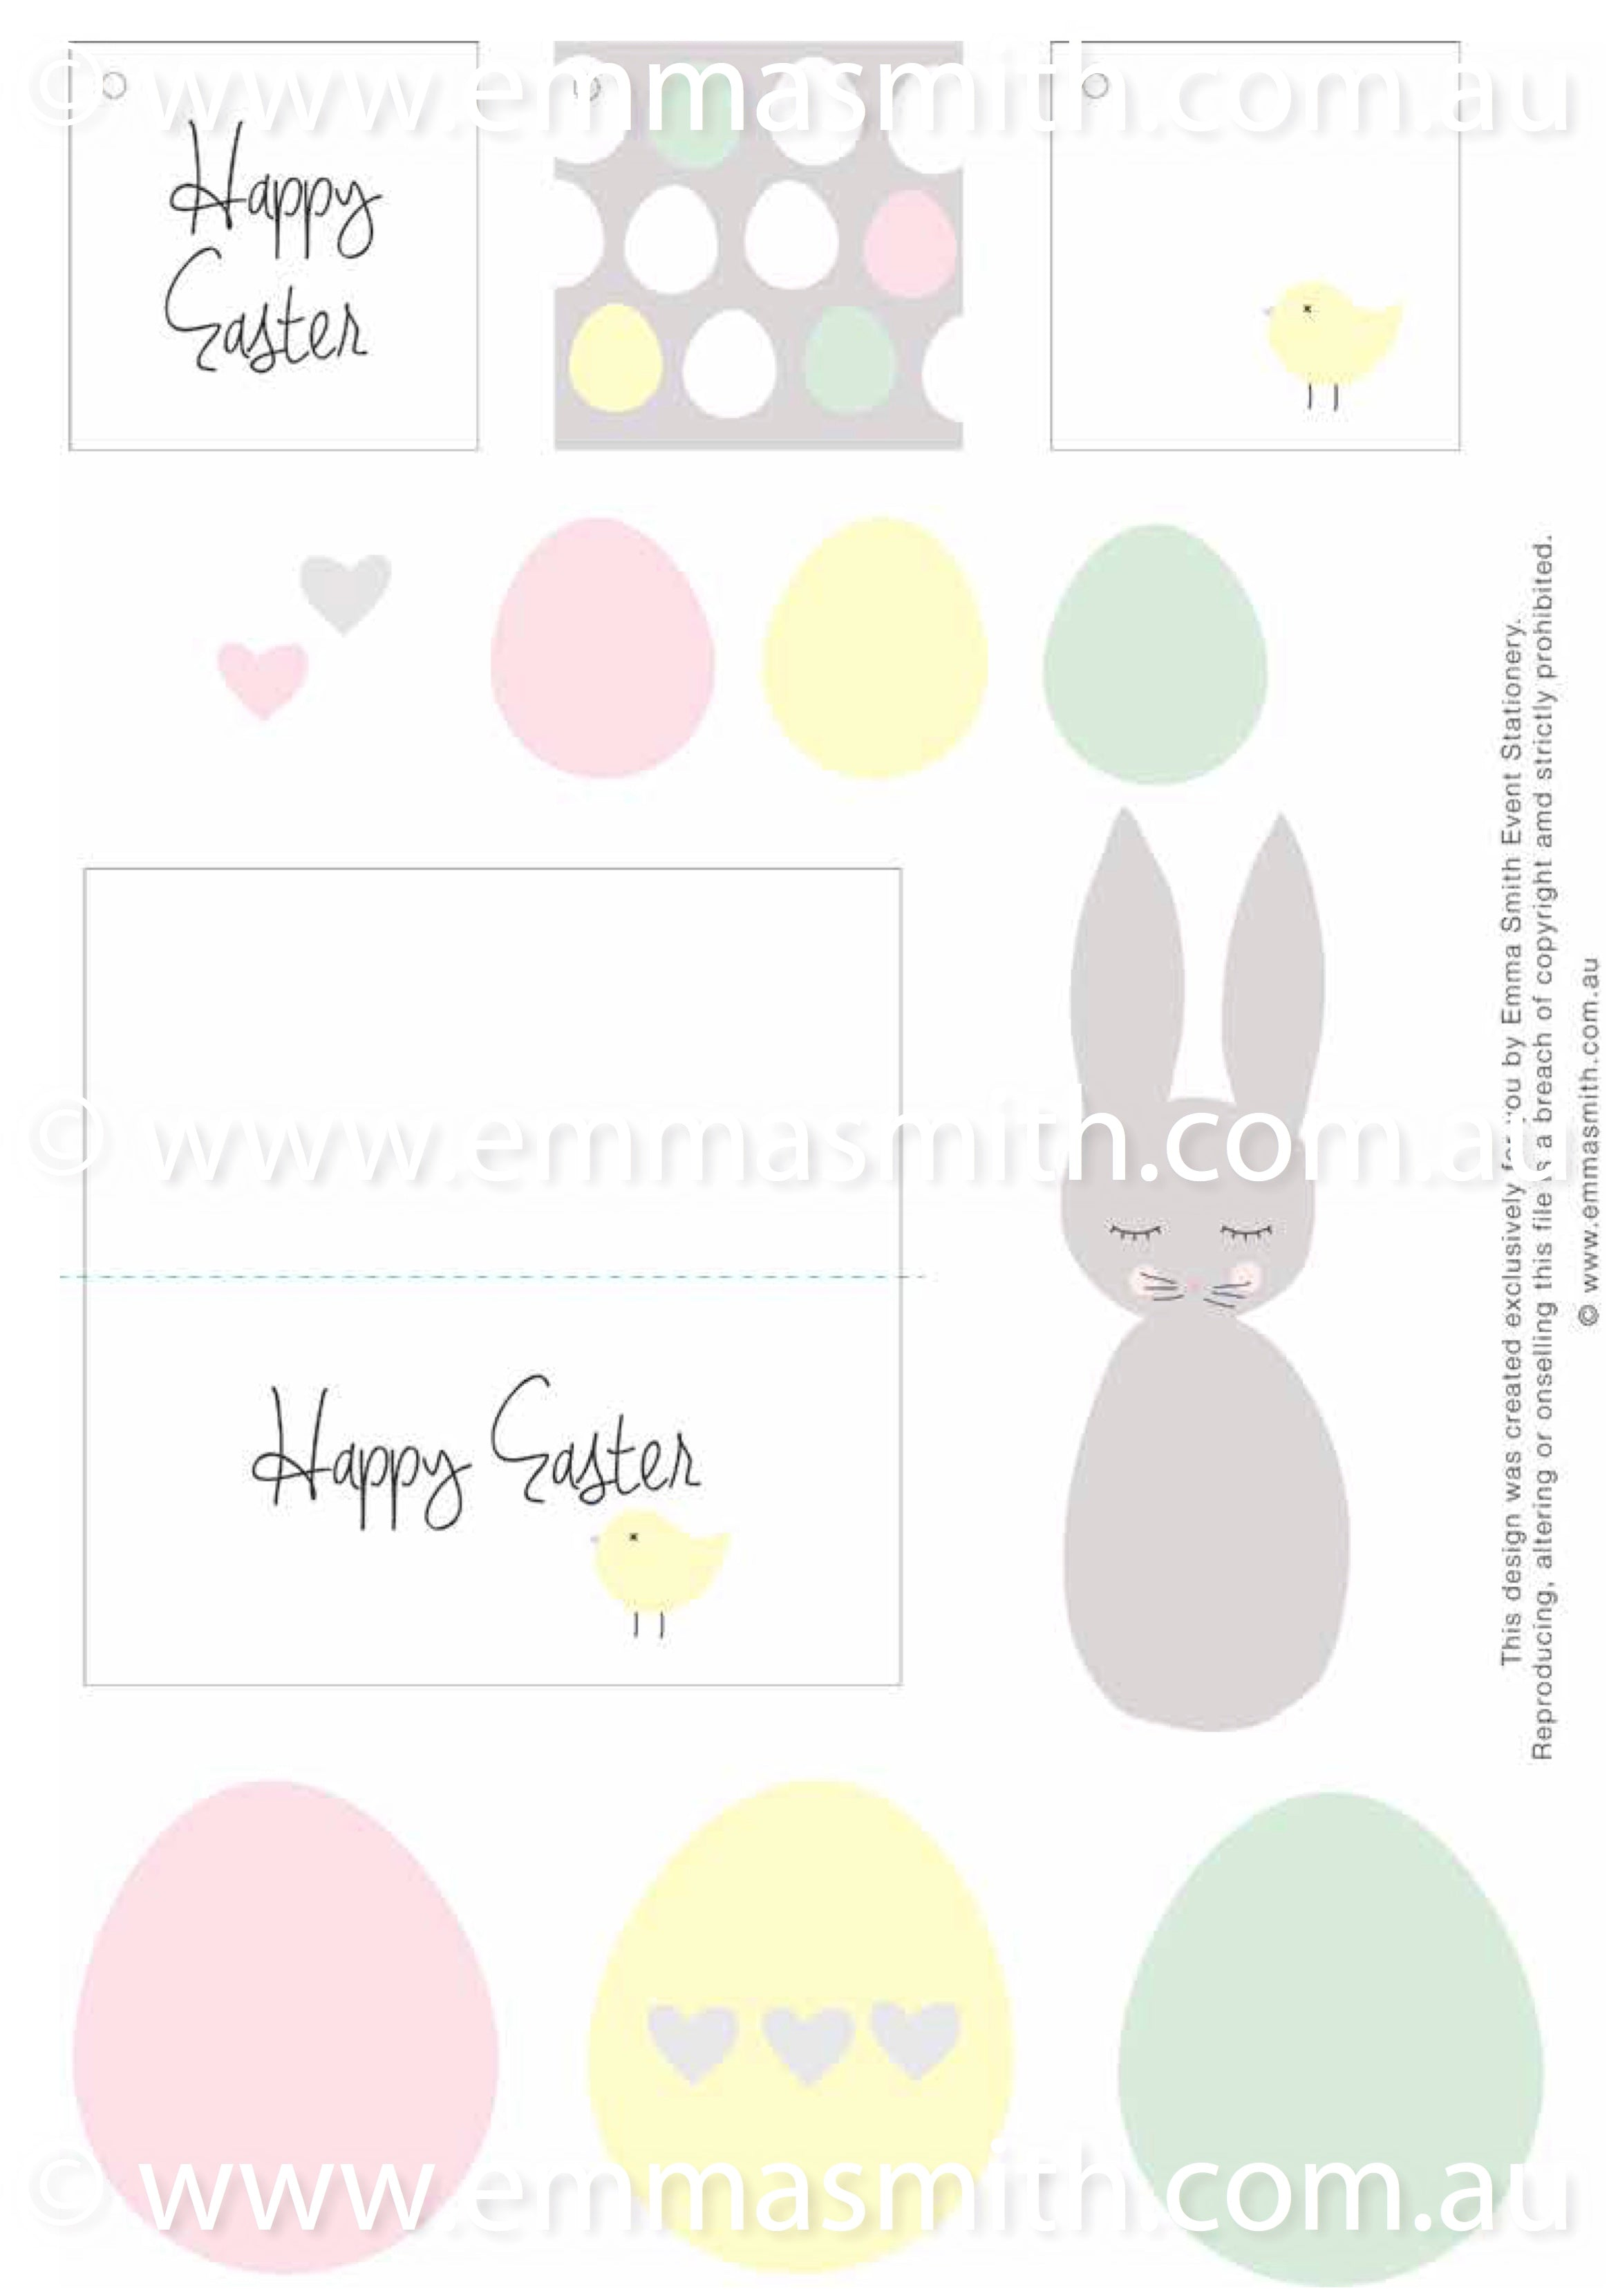 picture about Easter Stationery Printable known as Easter Electronic Report 2